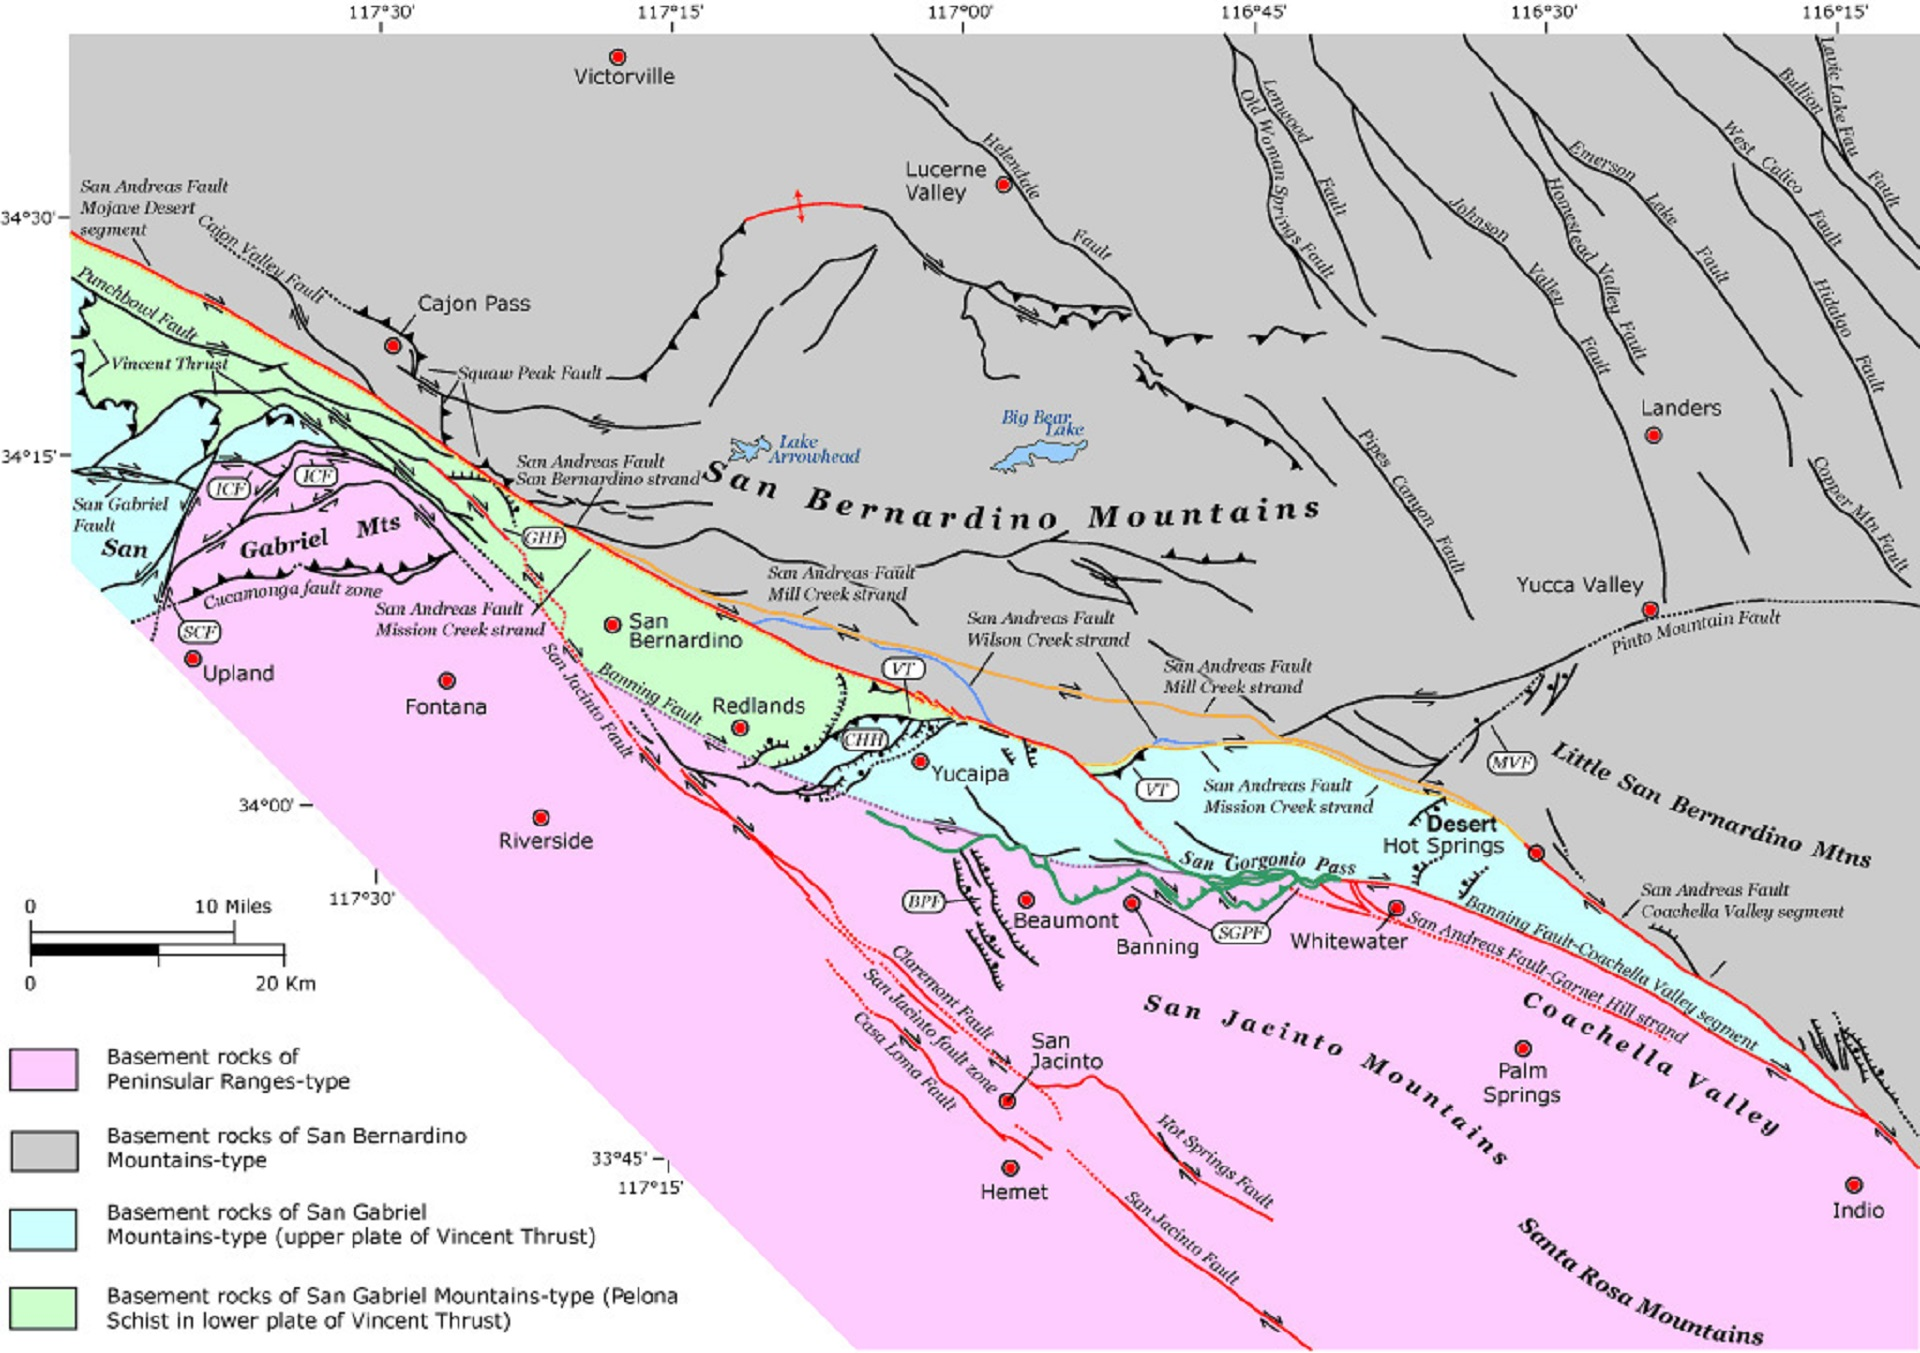 One segment of the San Jacinto fault — the red line running through the pink Peninsular Ranges rock-type section — as it runs from near Hemet north between Riverside and San Bernardino.